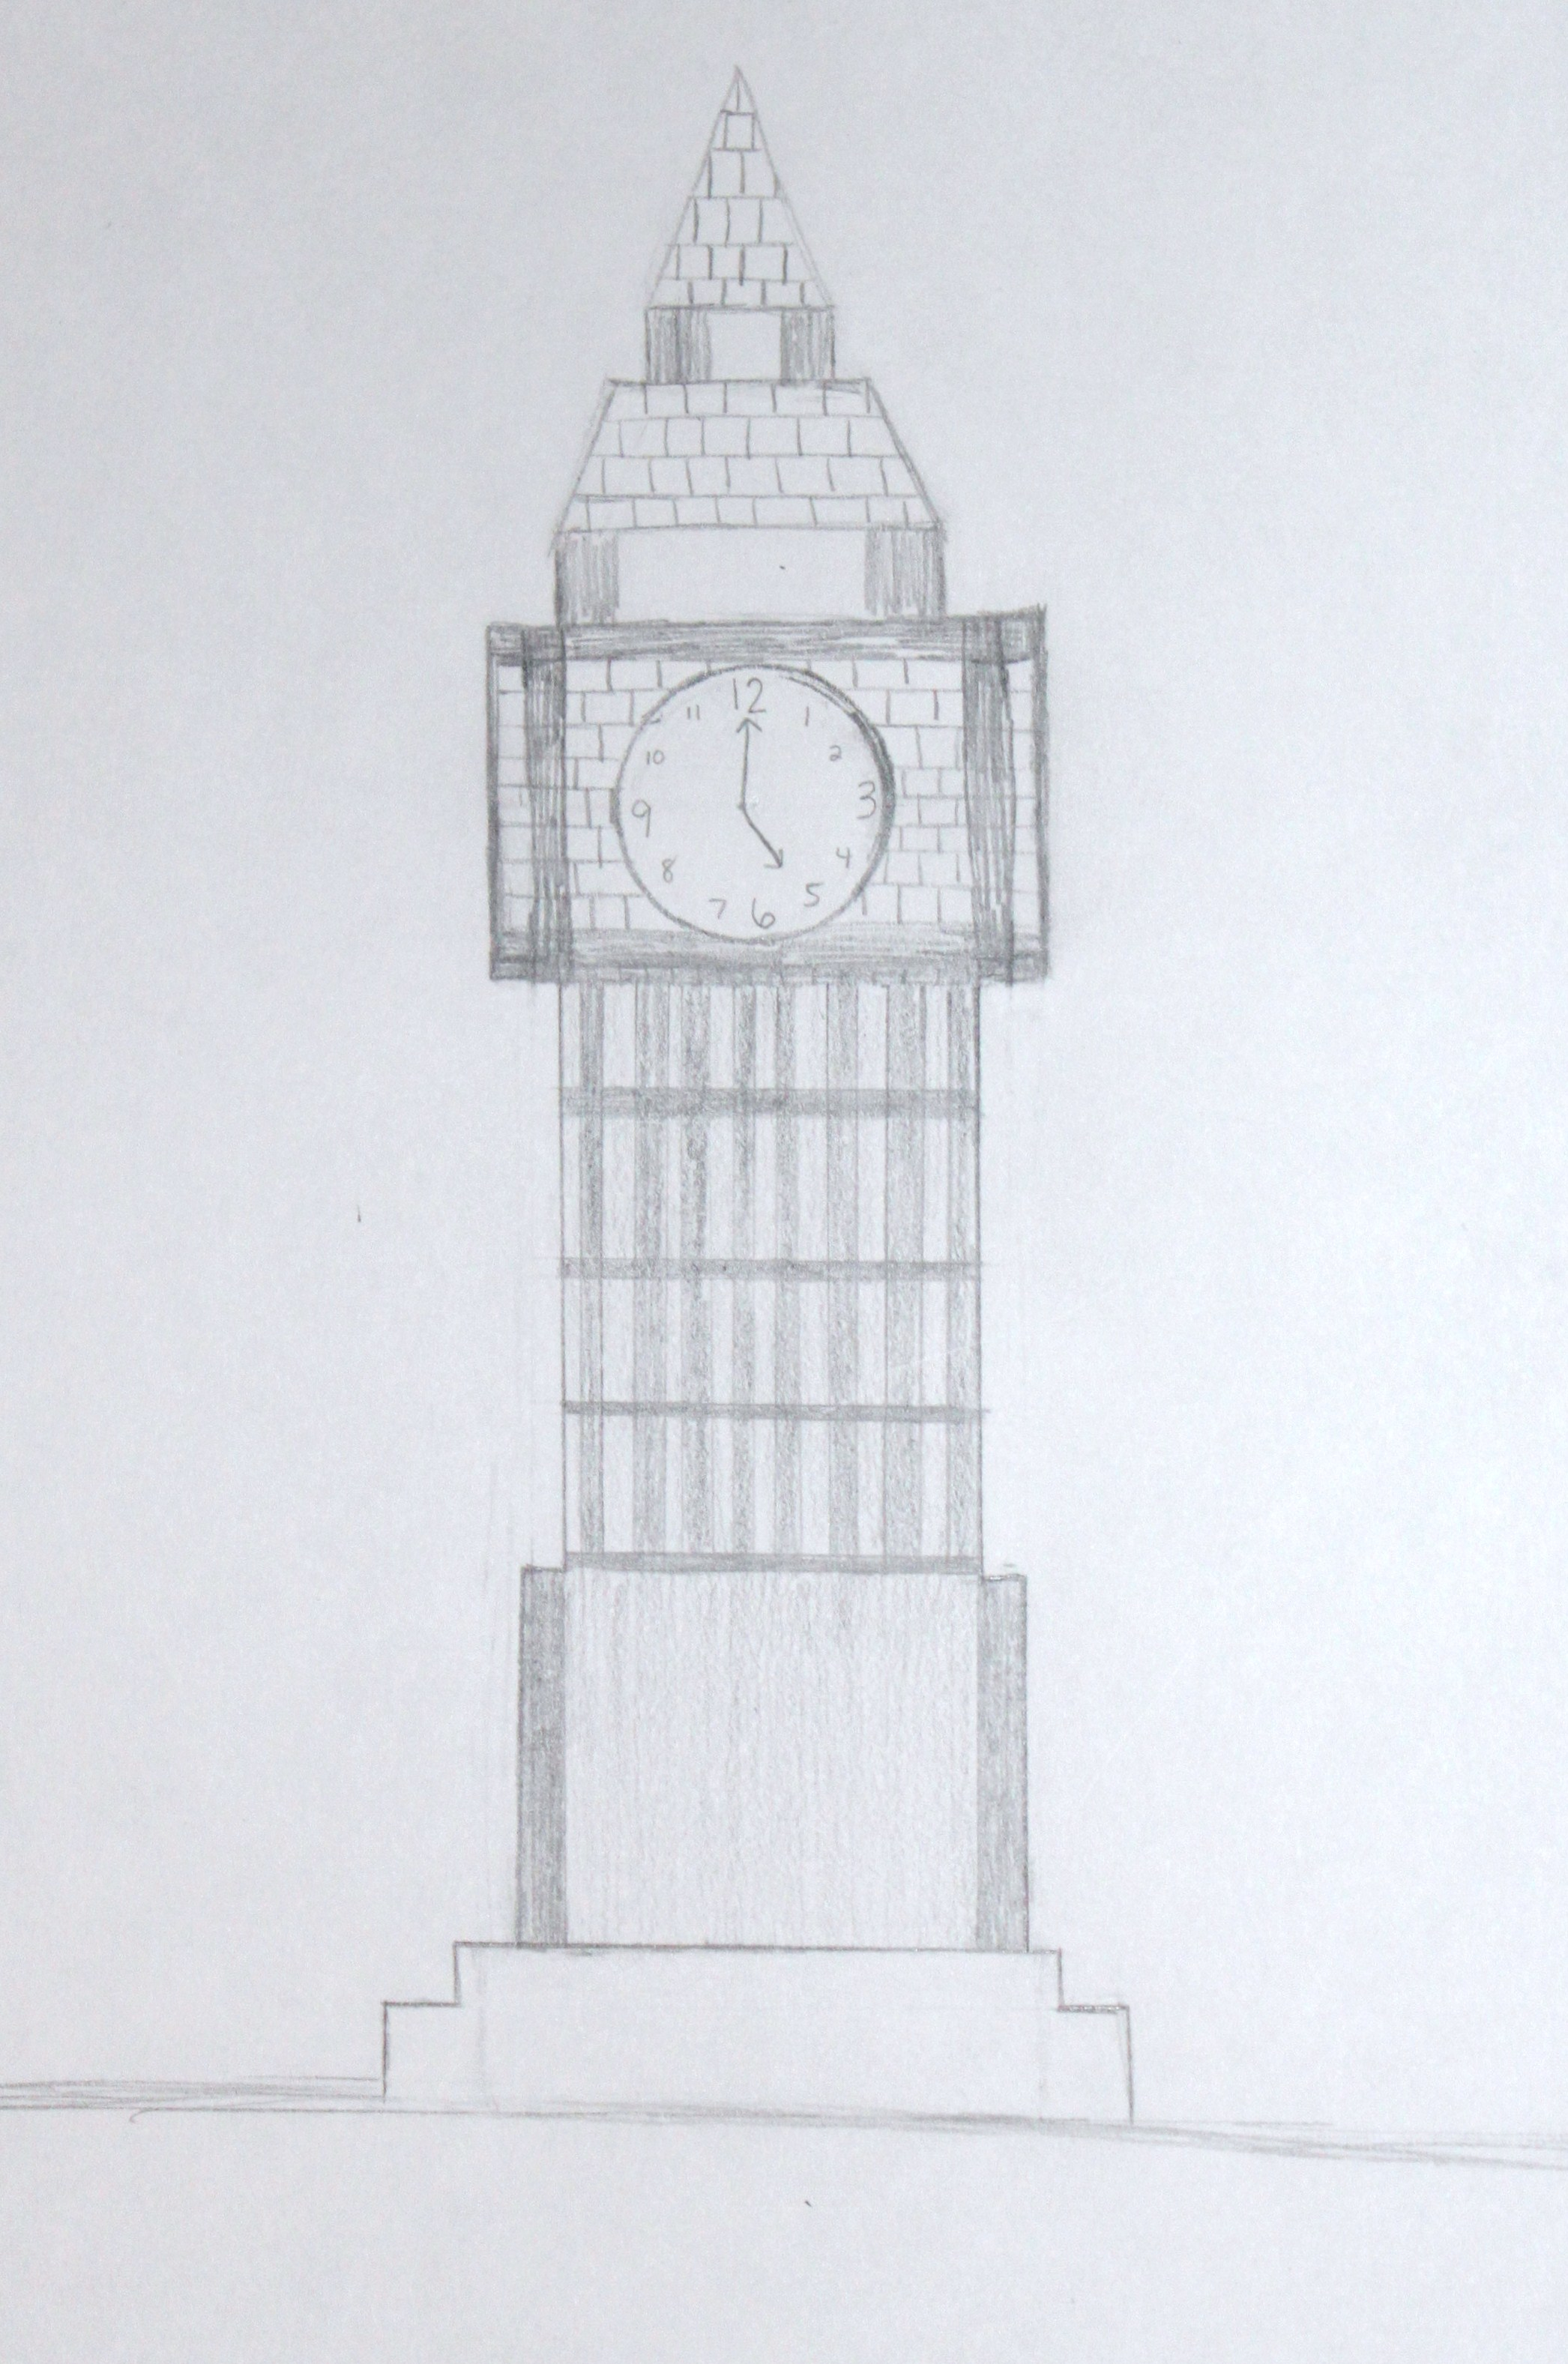 Drawn big ben The I is like brings